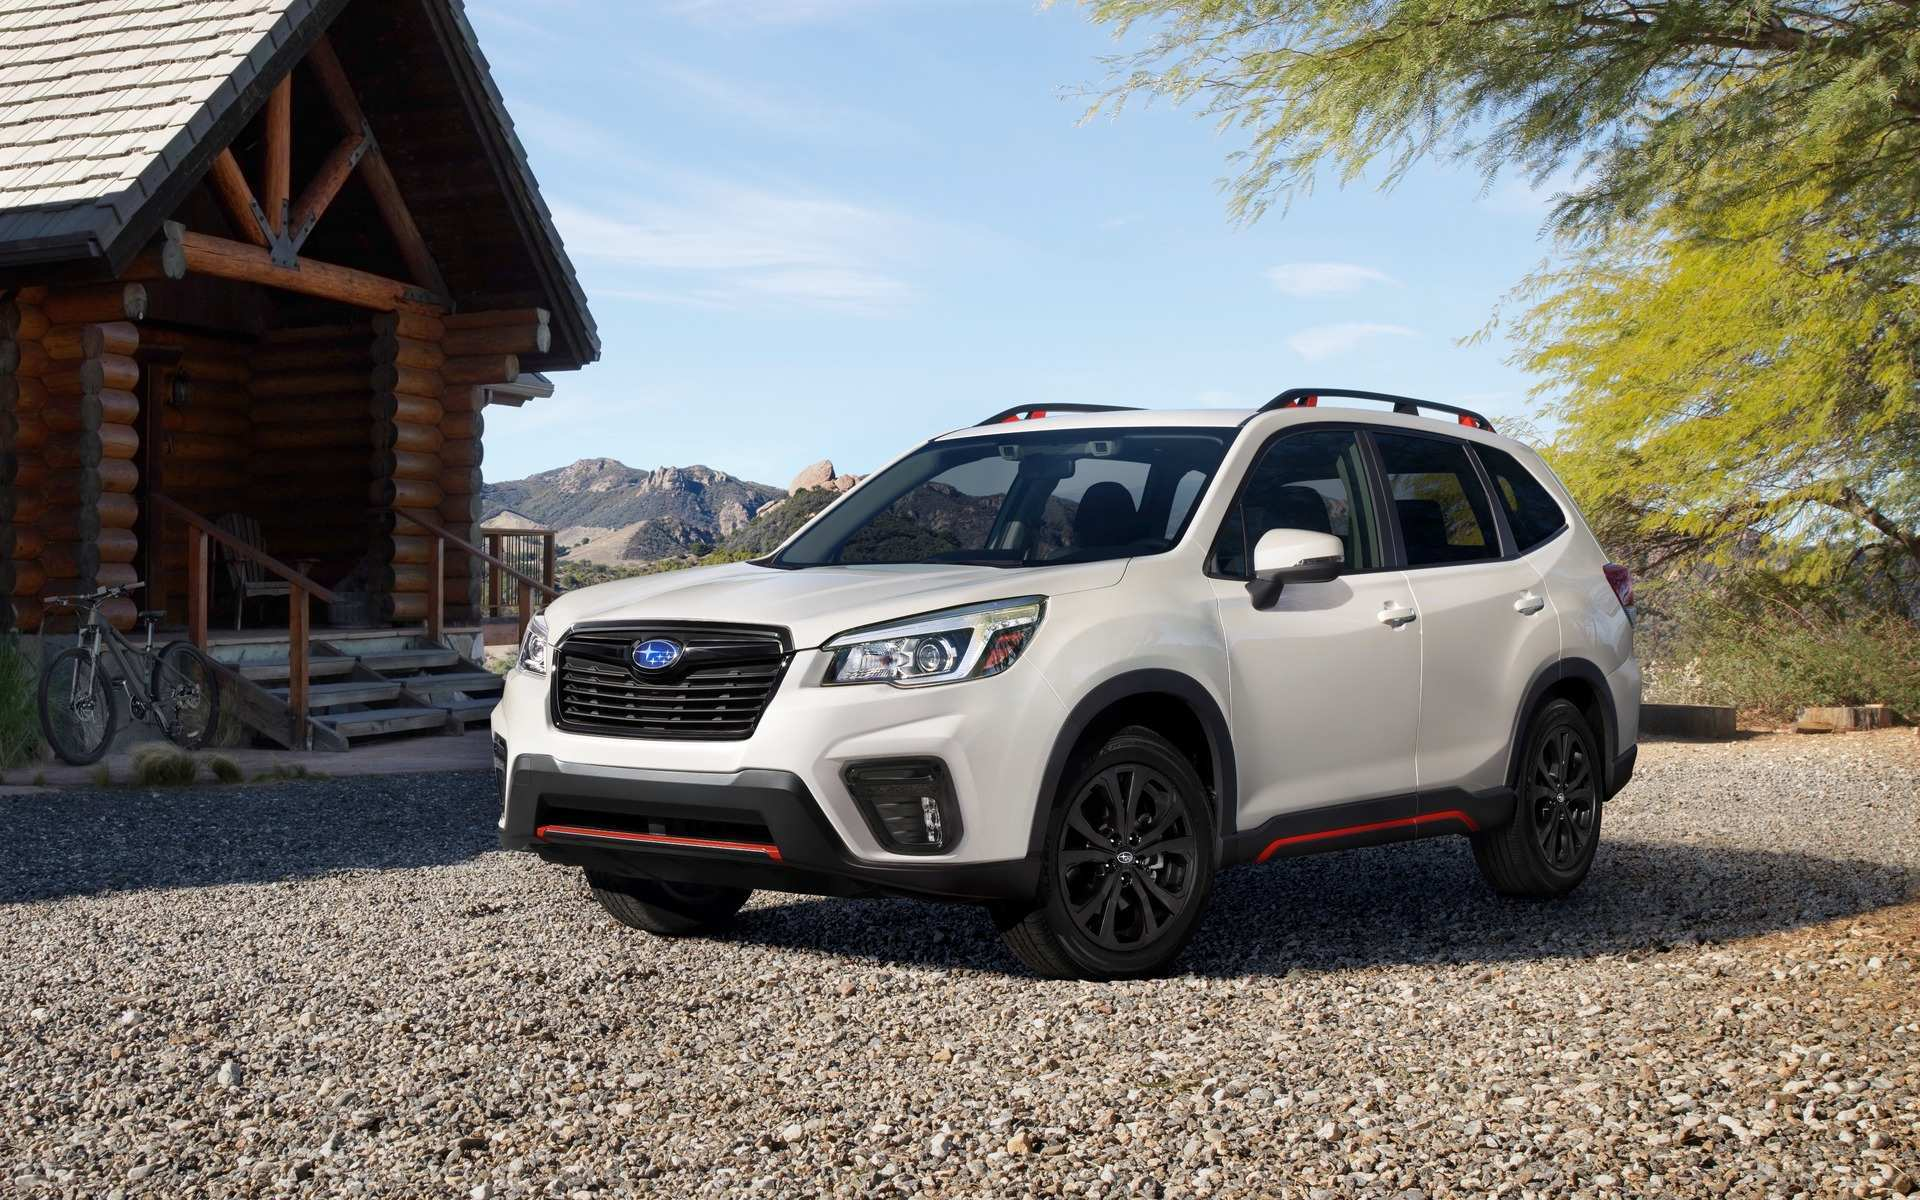 65 The Best 2019 Subaru Forester Design Price And Release Date